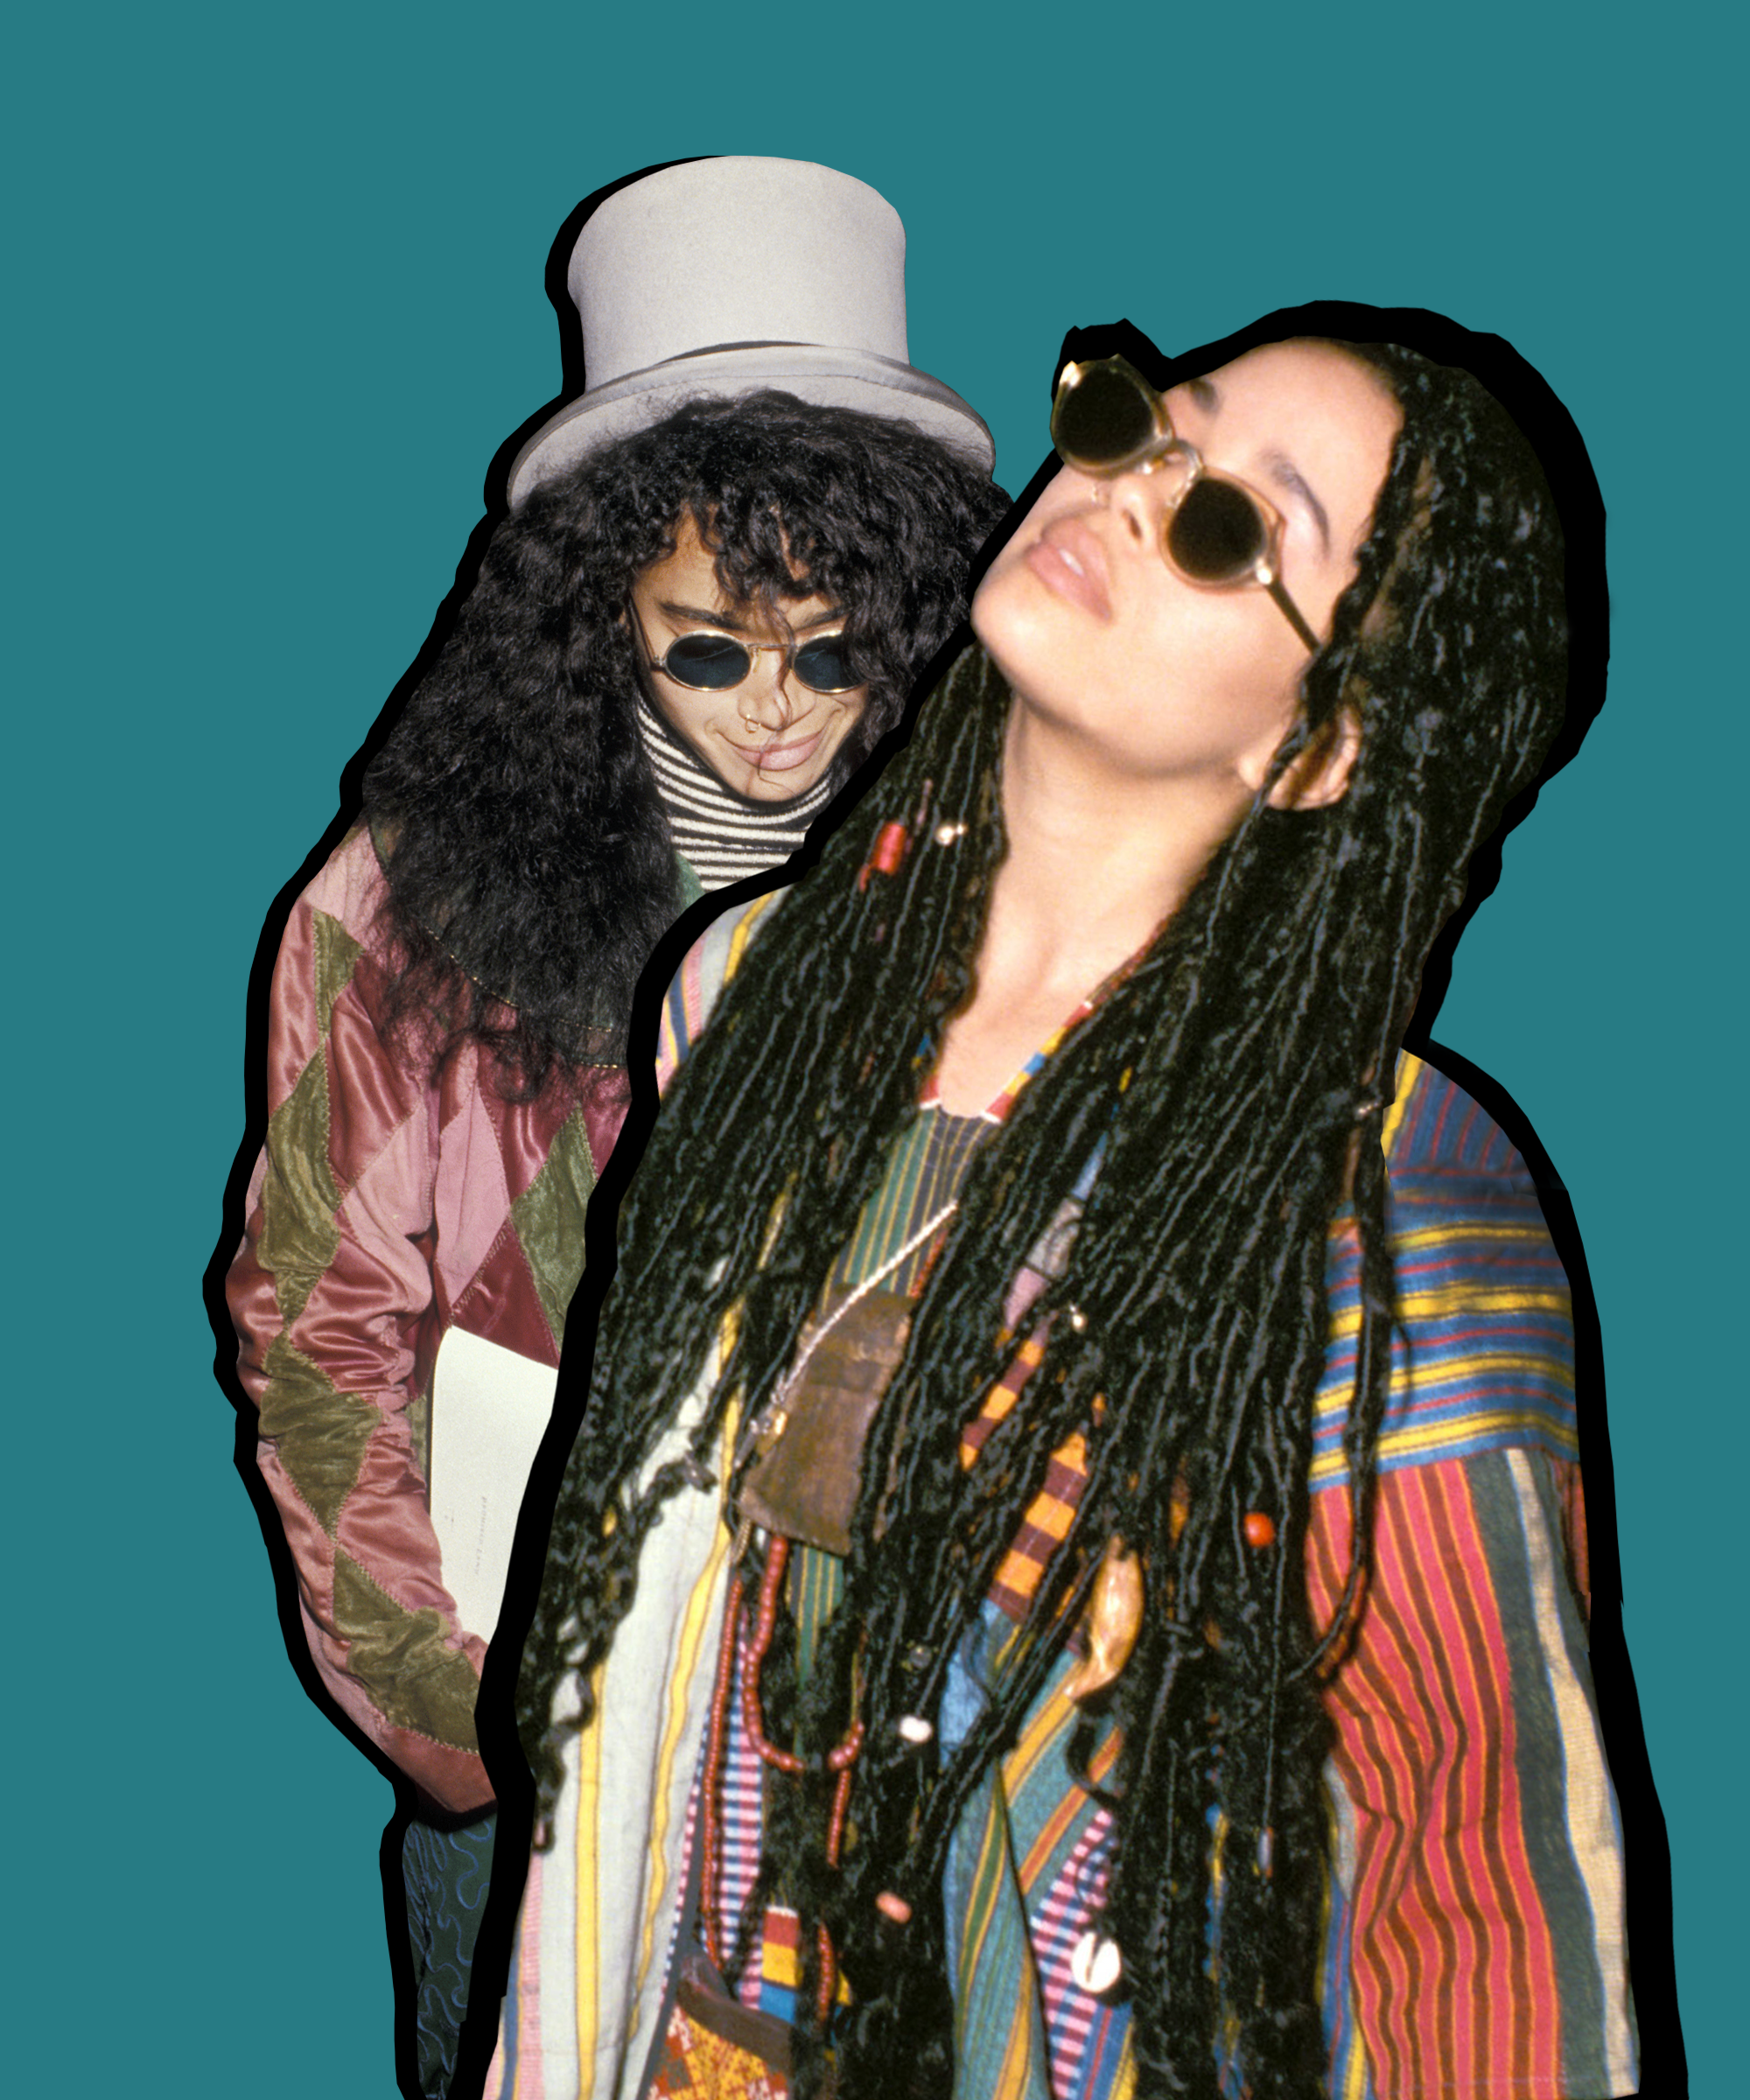 Lisa Bonet Best Fashion Looks From The 90s